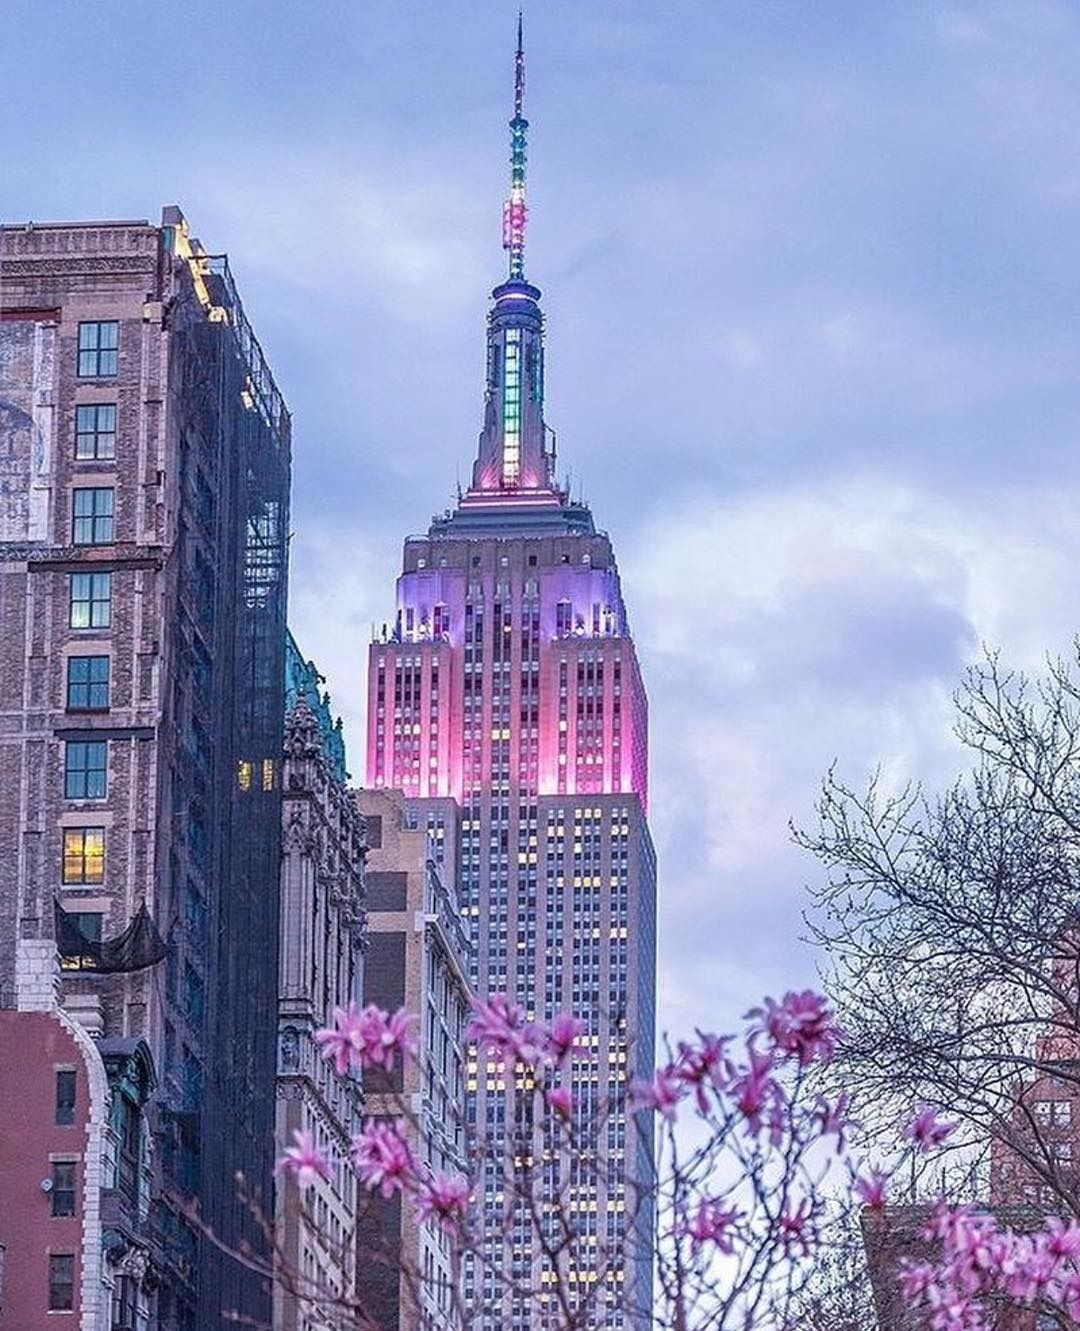 4 665 Likes 9 Comments Urban Outfitters Nyc Uonewyork On Instagram We Ny Uonewyork Nyclovesnyc Empire State Building Empire State New York